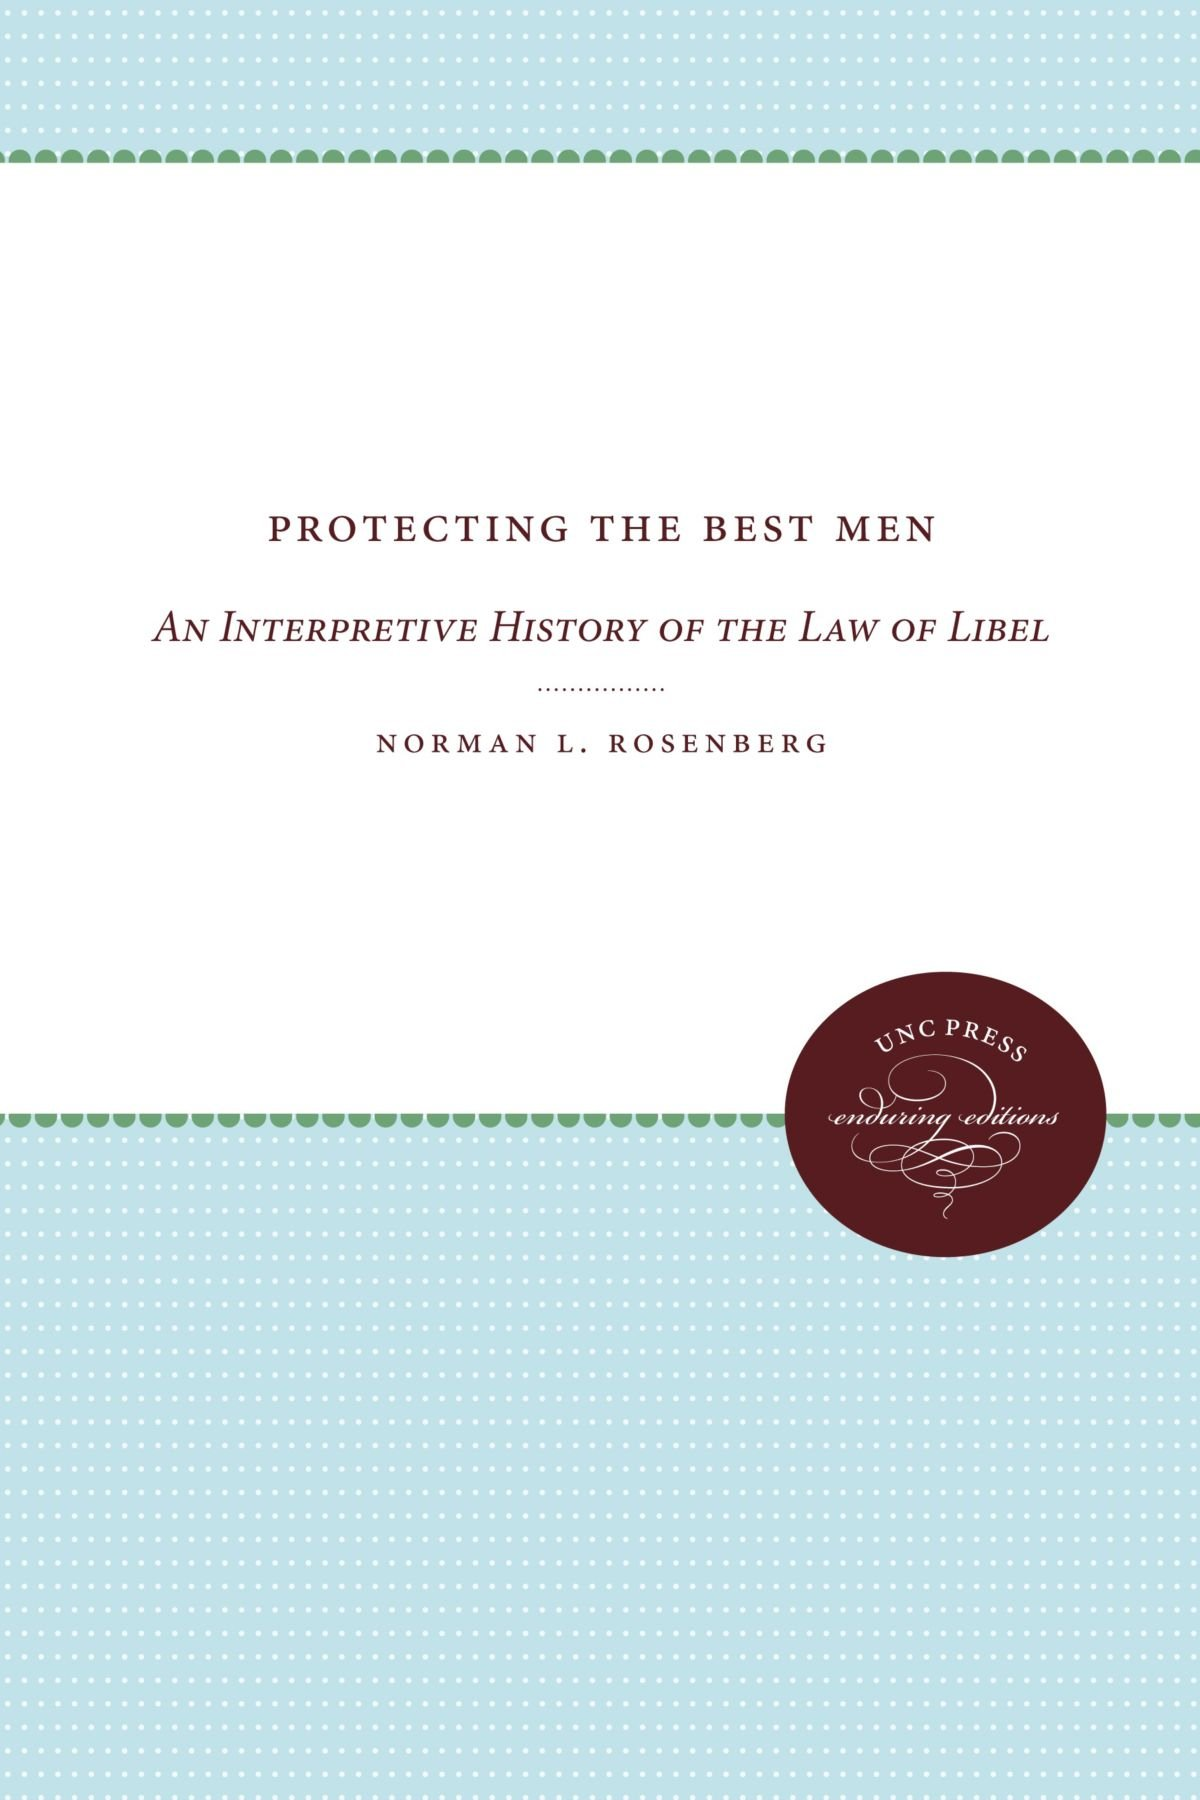 Protecting the Best Men: An Interpretive History of the Law of Libel (Studies in Legal History)